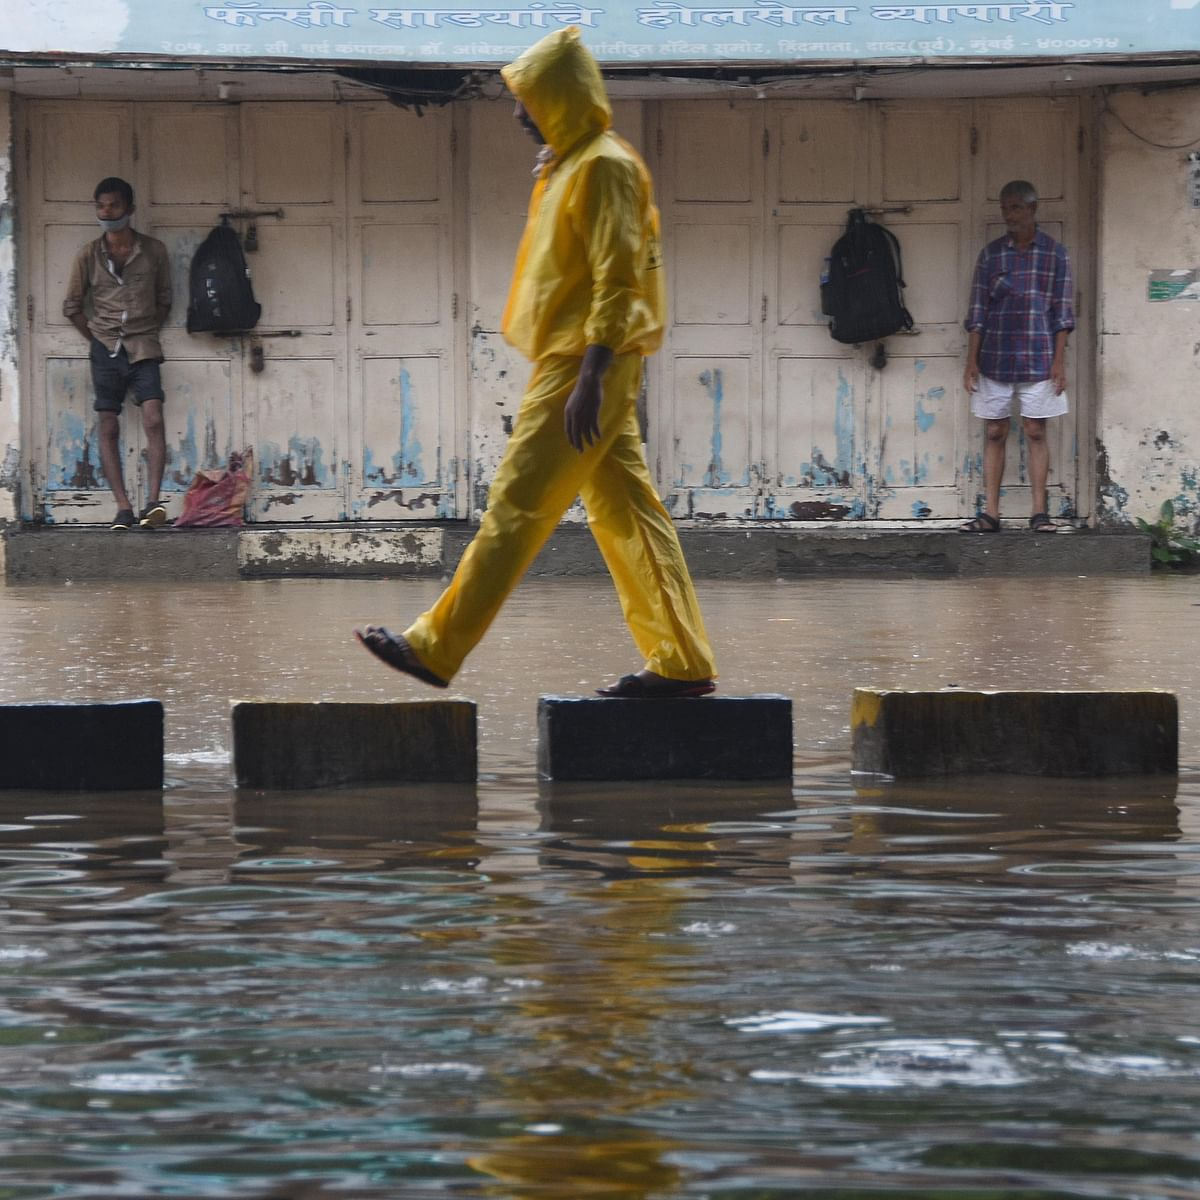 In Pictures: Mumbai lashed by heavy rains; flooding in Cuffe Parade, Worli, Dadar, Parel